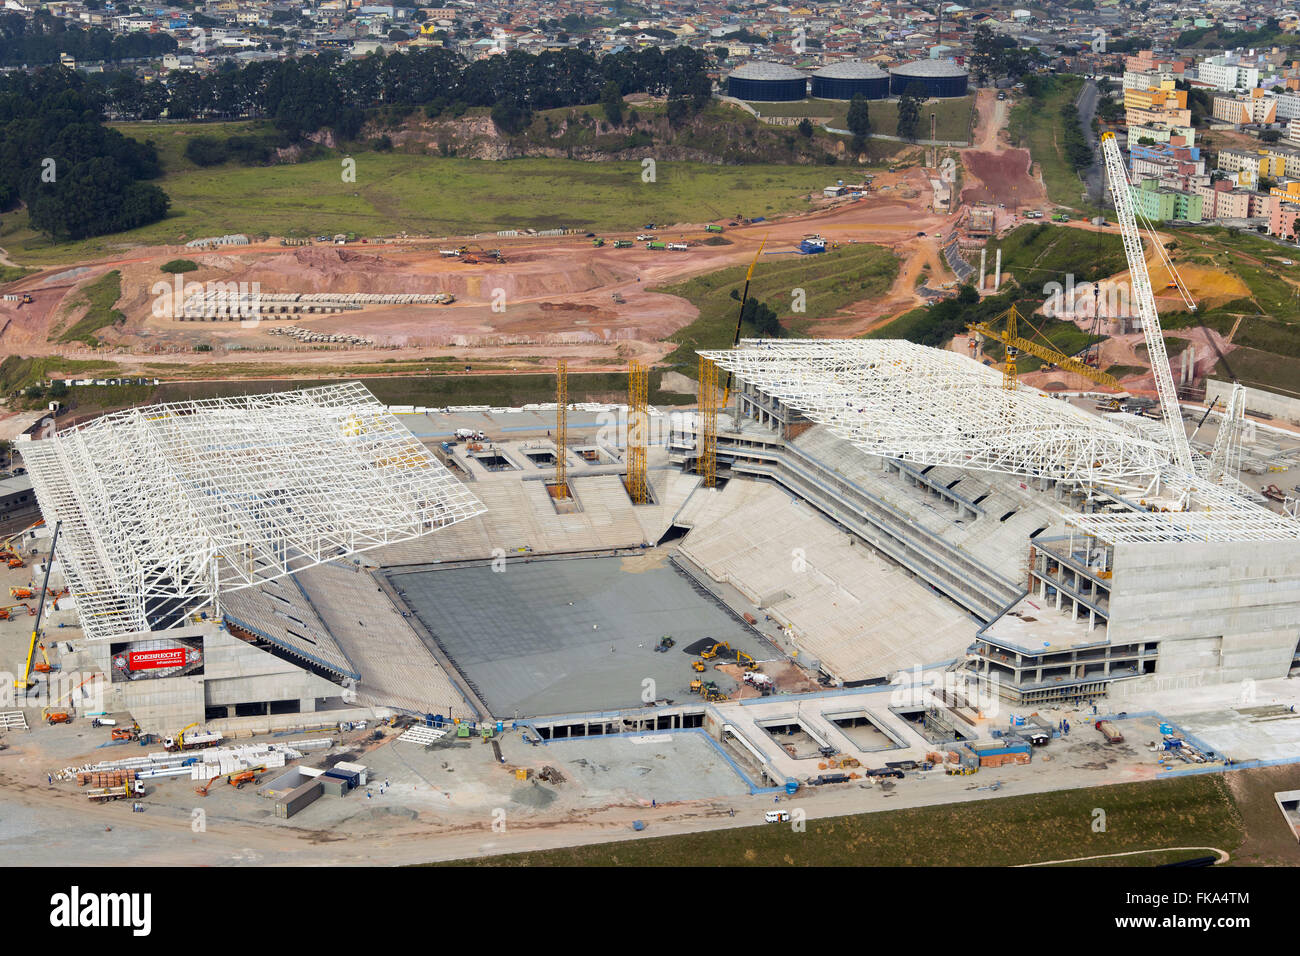 Aerial view of the construction work of the Corinthians stadium Arena - Itaquera neighborhood - east side - Stock Image